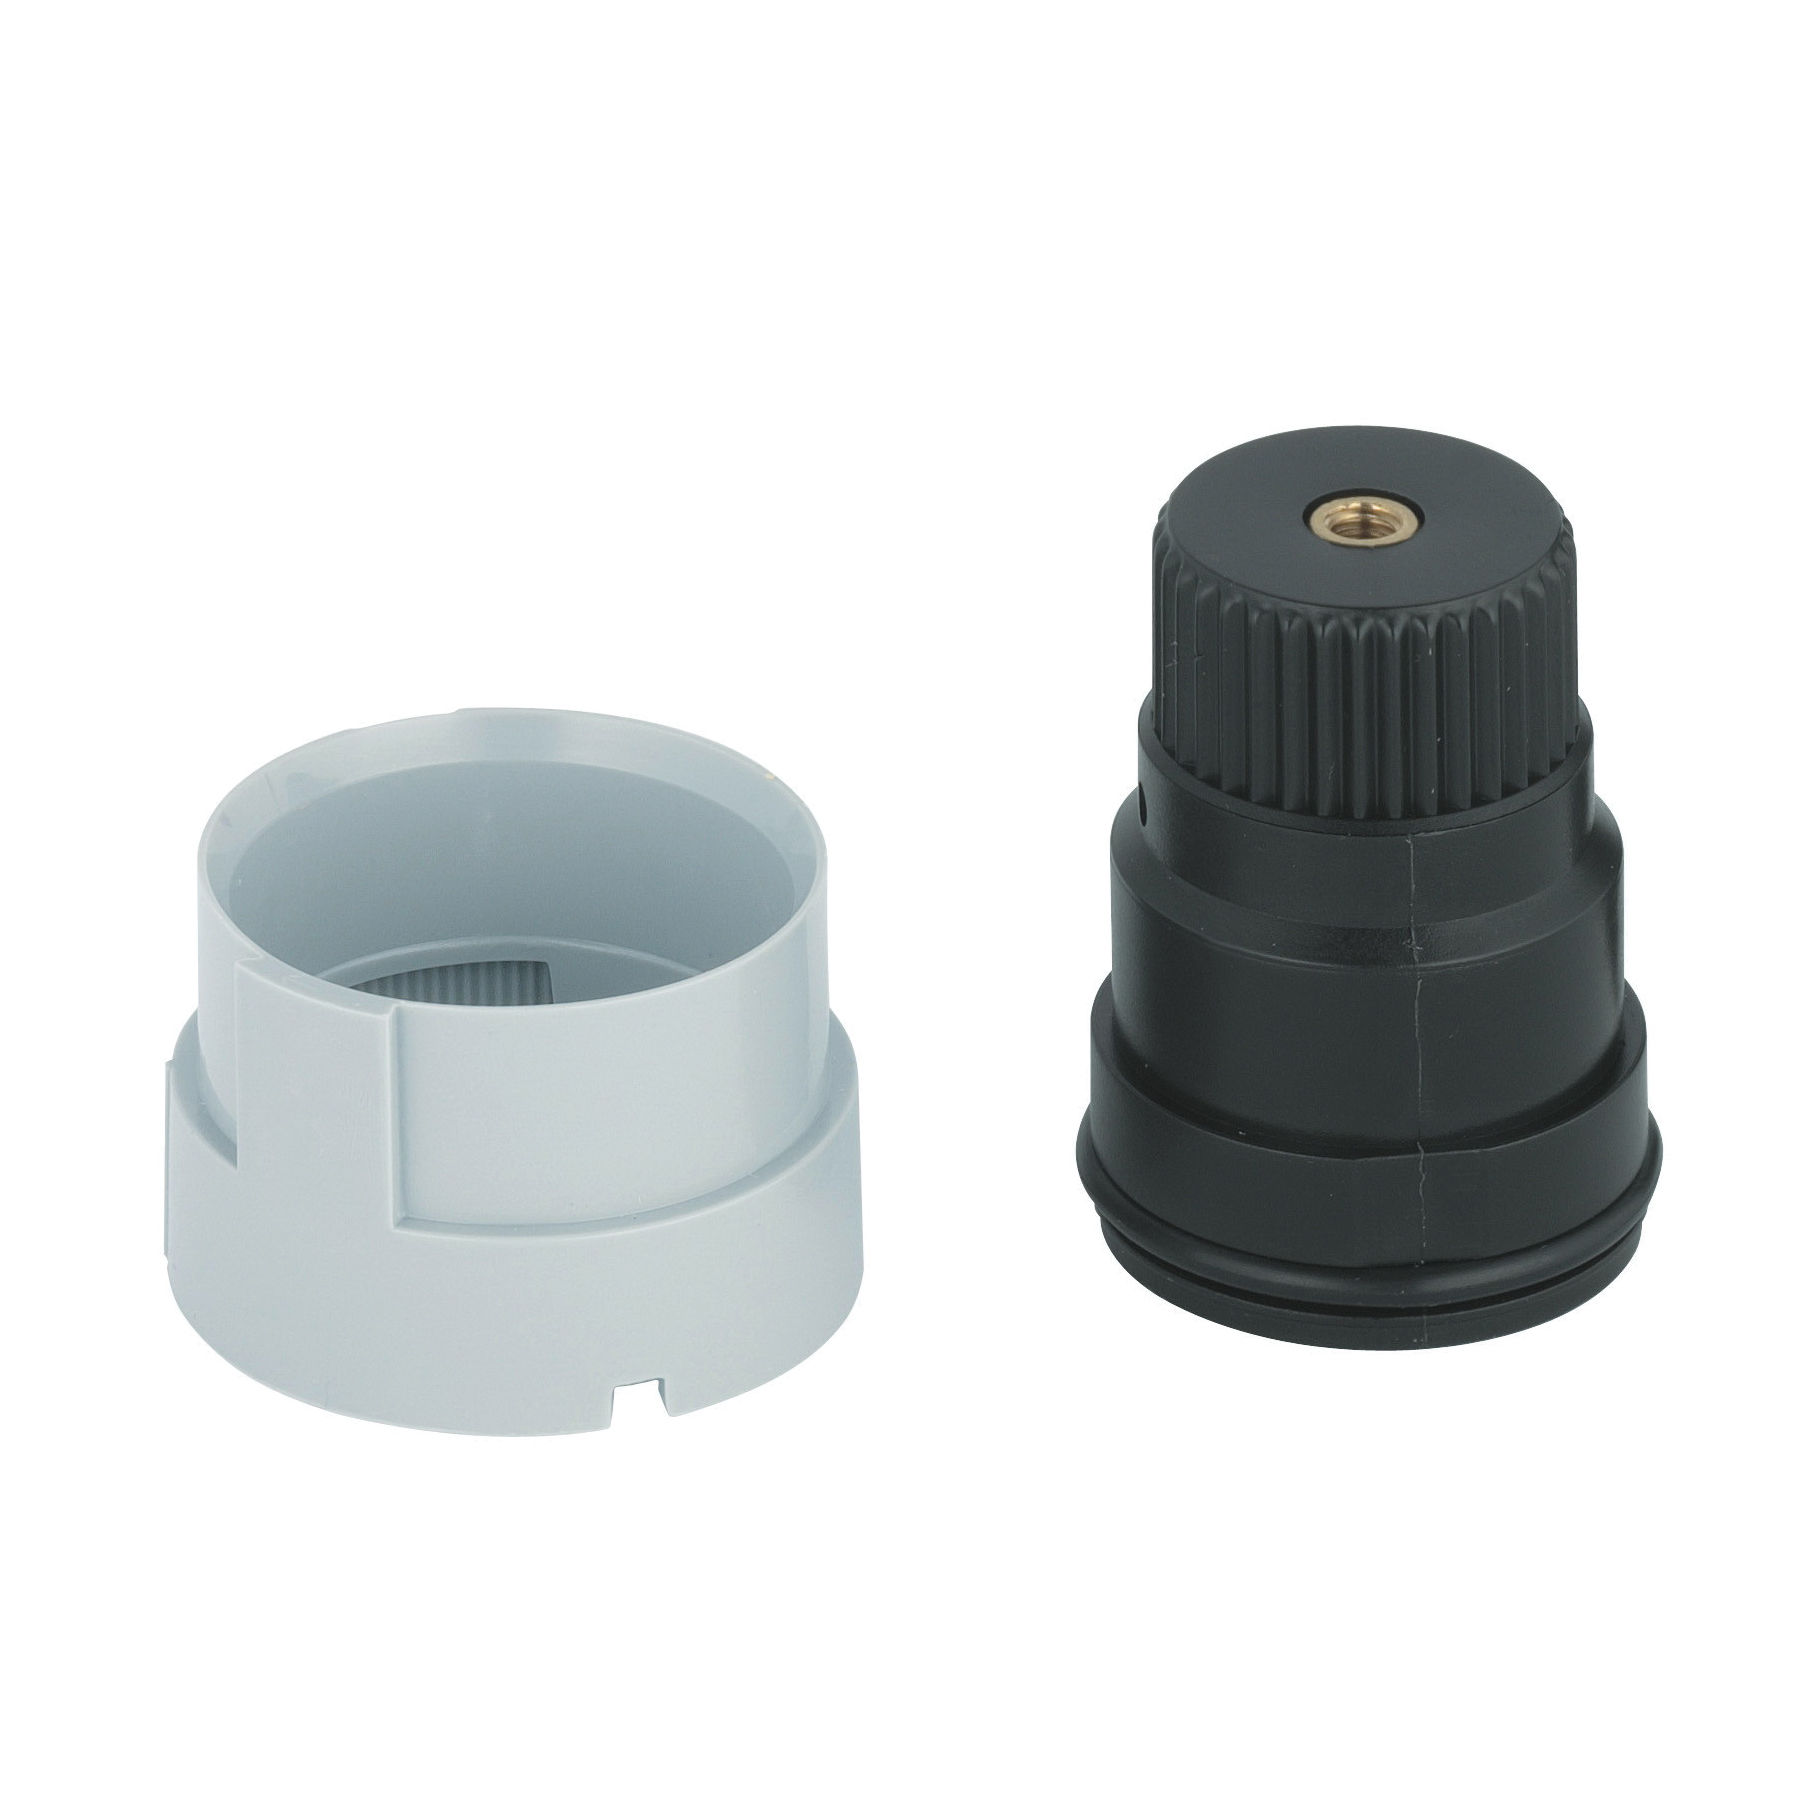 GROHE 47167000 Stop Ring and Regulating Nut, For Use With Grohtherm Thermostat, Import